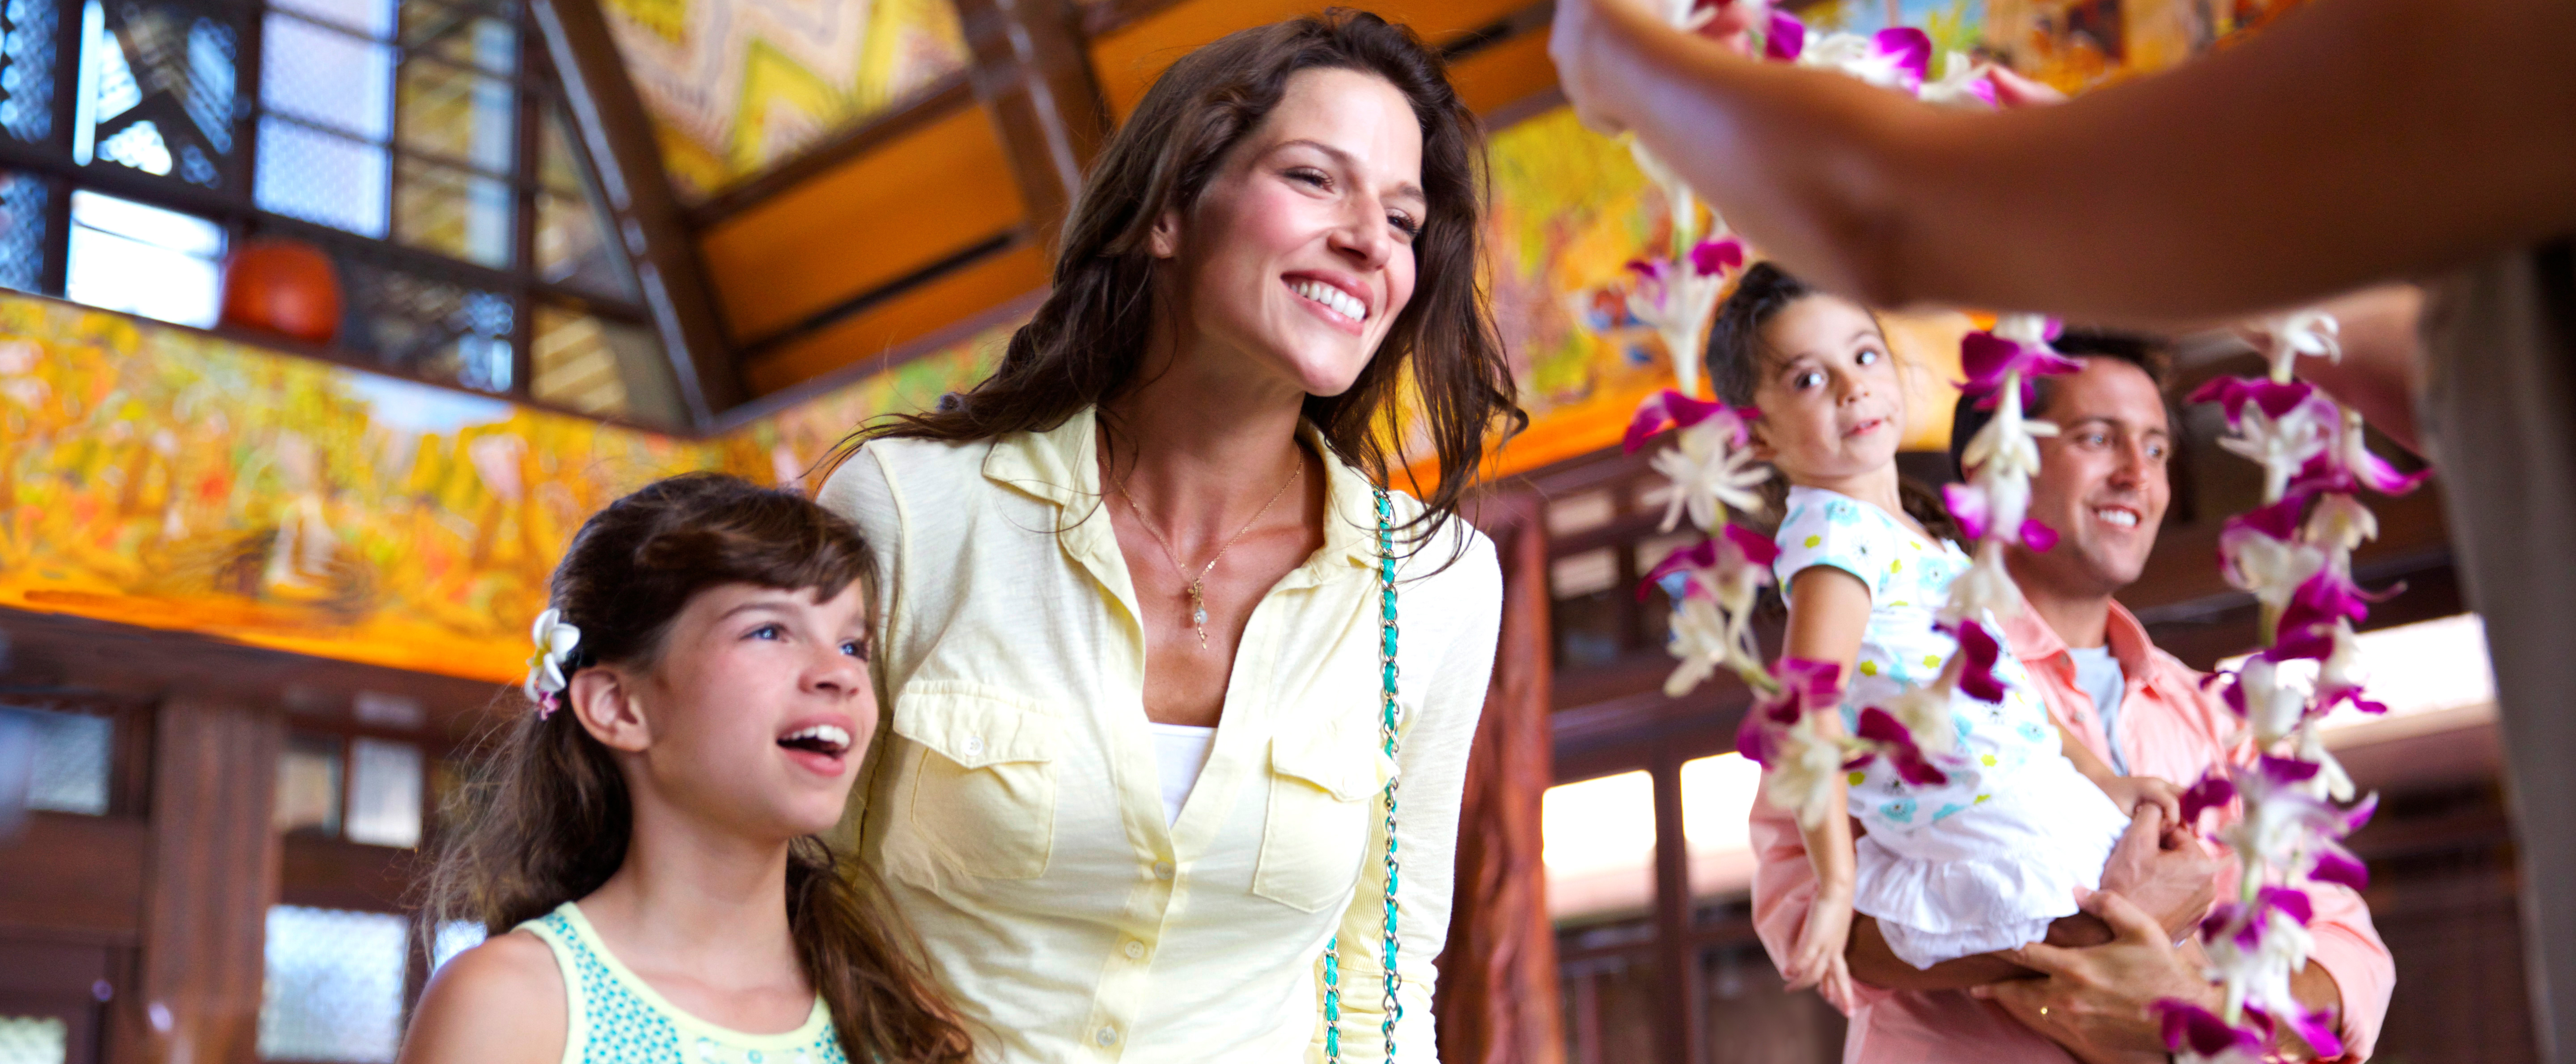 A mother and daughter are greeted with leis in the main lobby while a father holds their young daughter